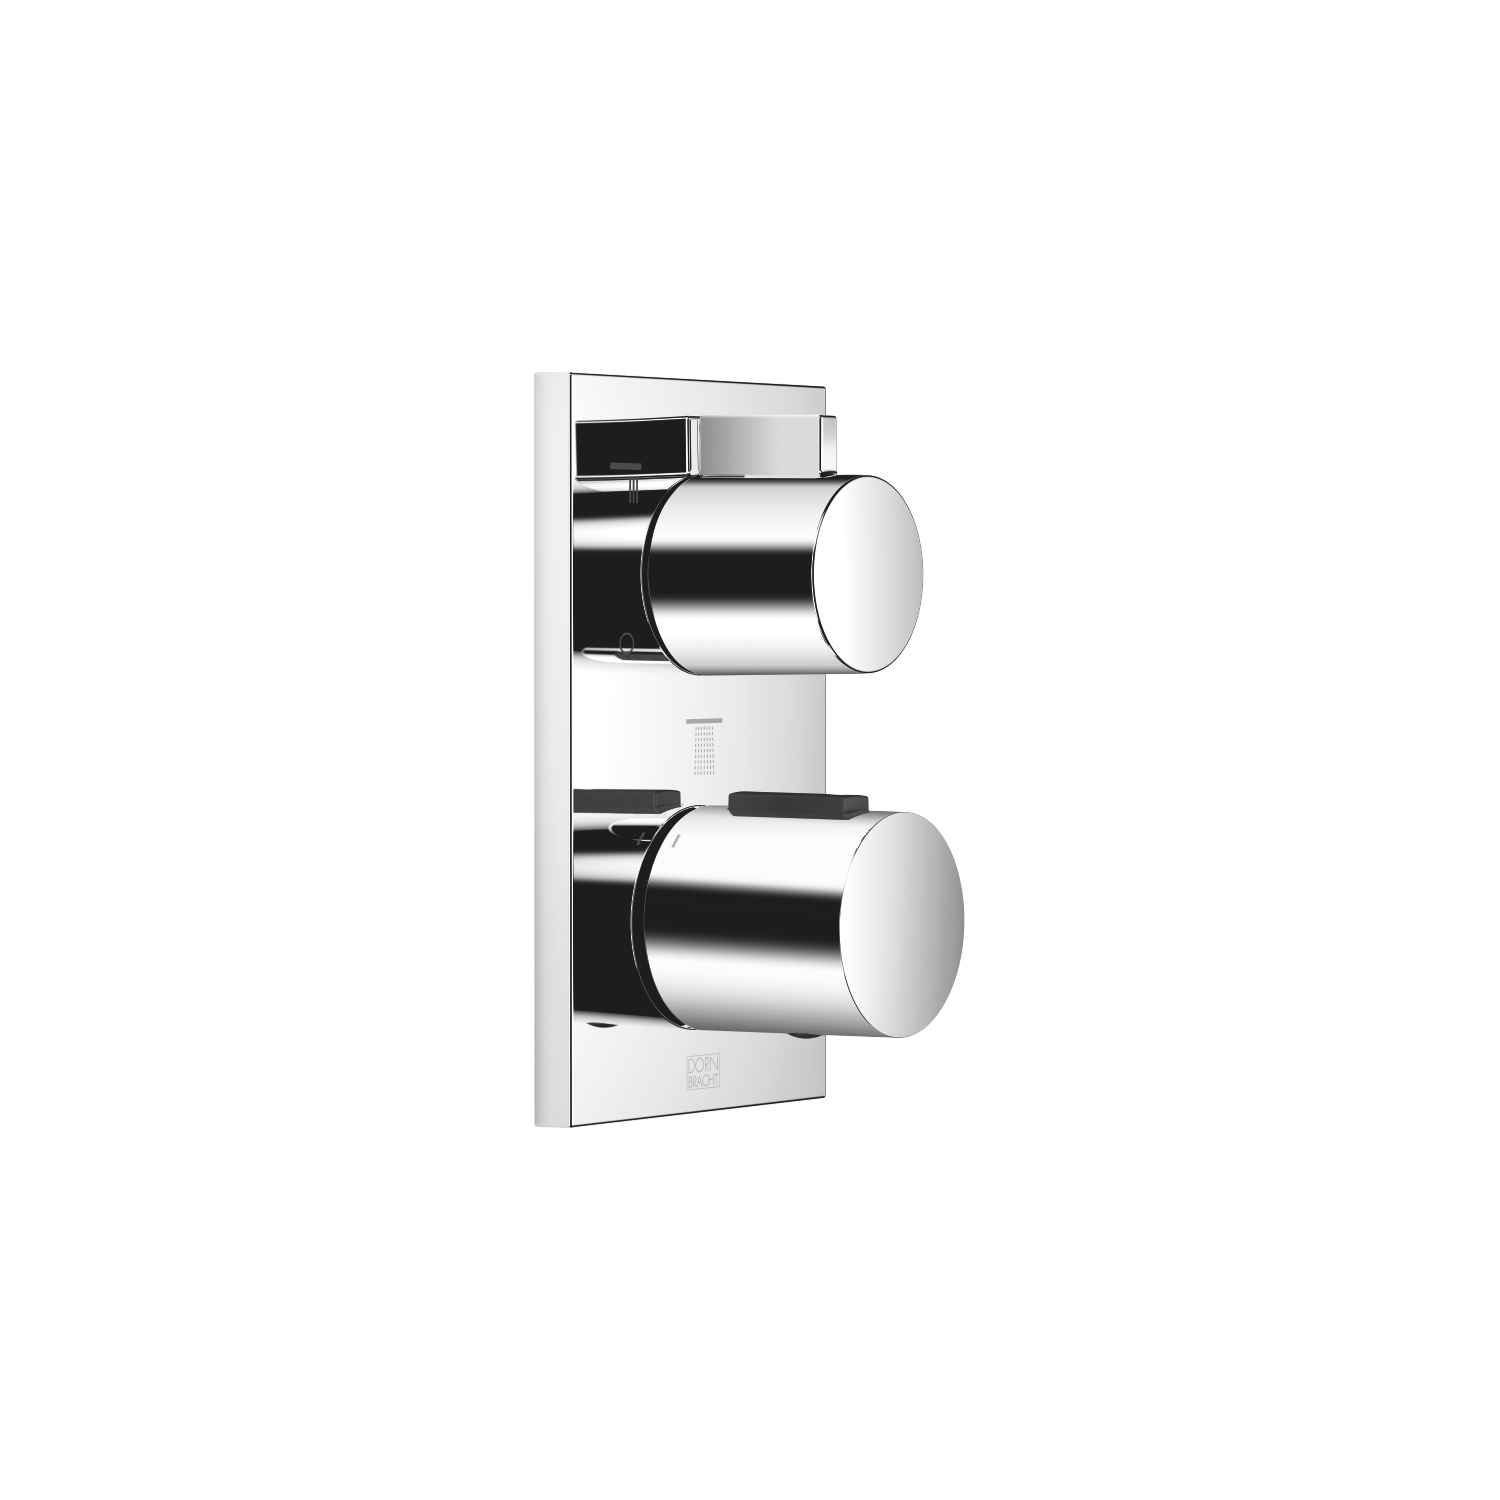 Concealed thermostat with three function volume control - polished chrome